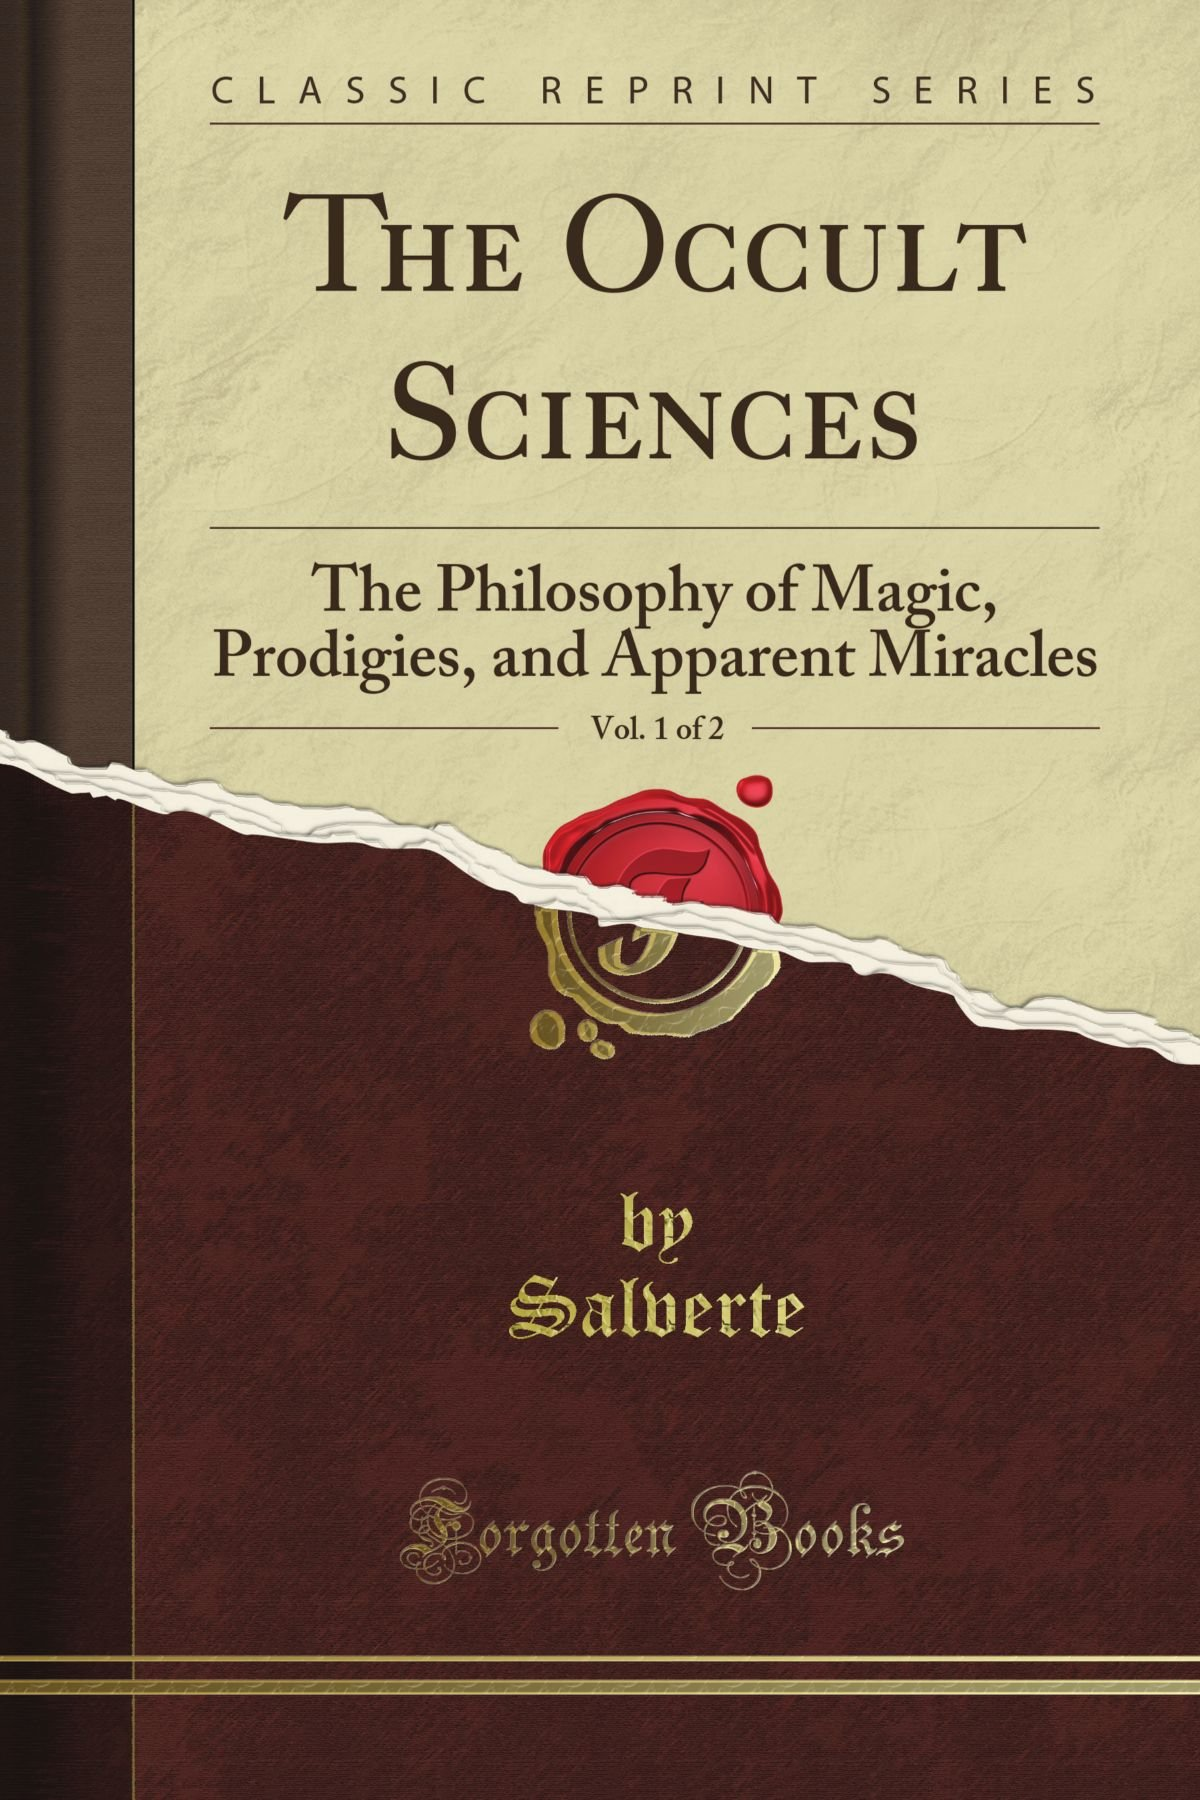 The Occult Sciences, Vol. 1 of 2: The Philosophy of Magic, Prodigies, and Apparent Miracles (Classic Reprint) ebook